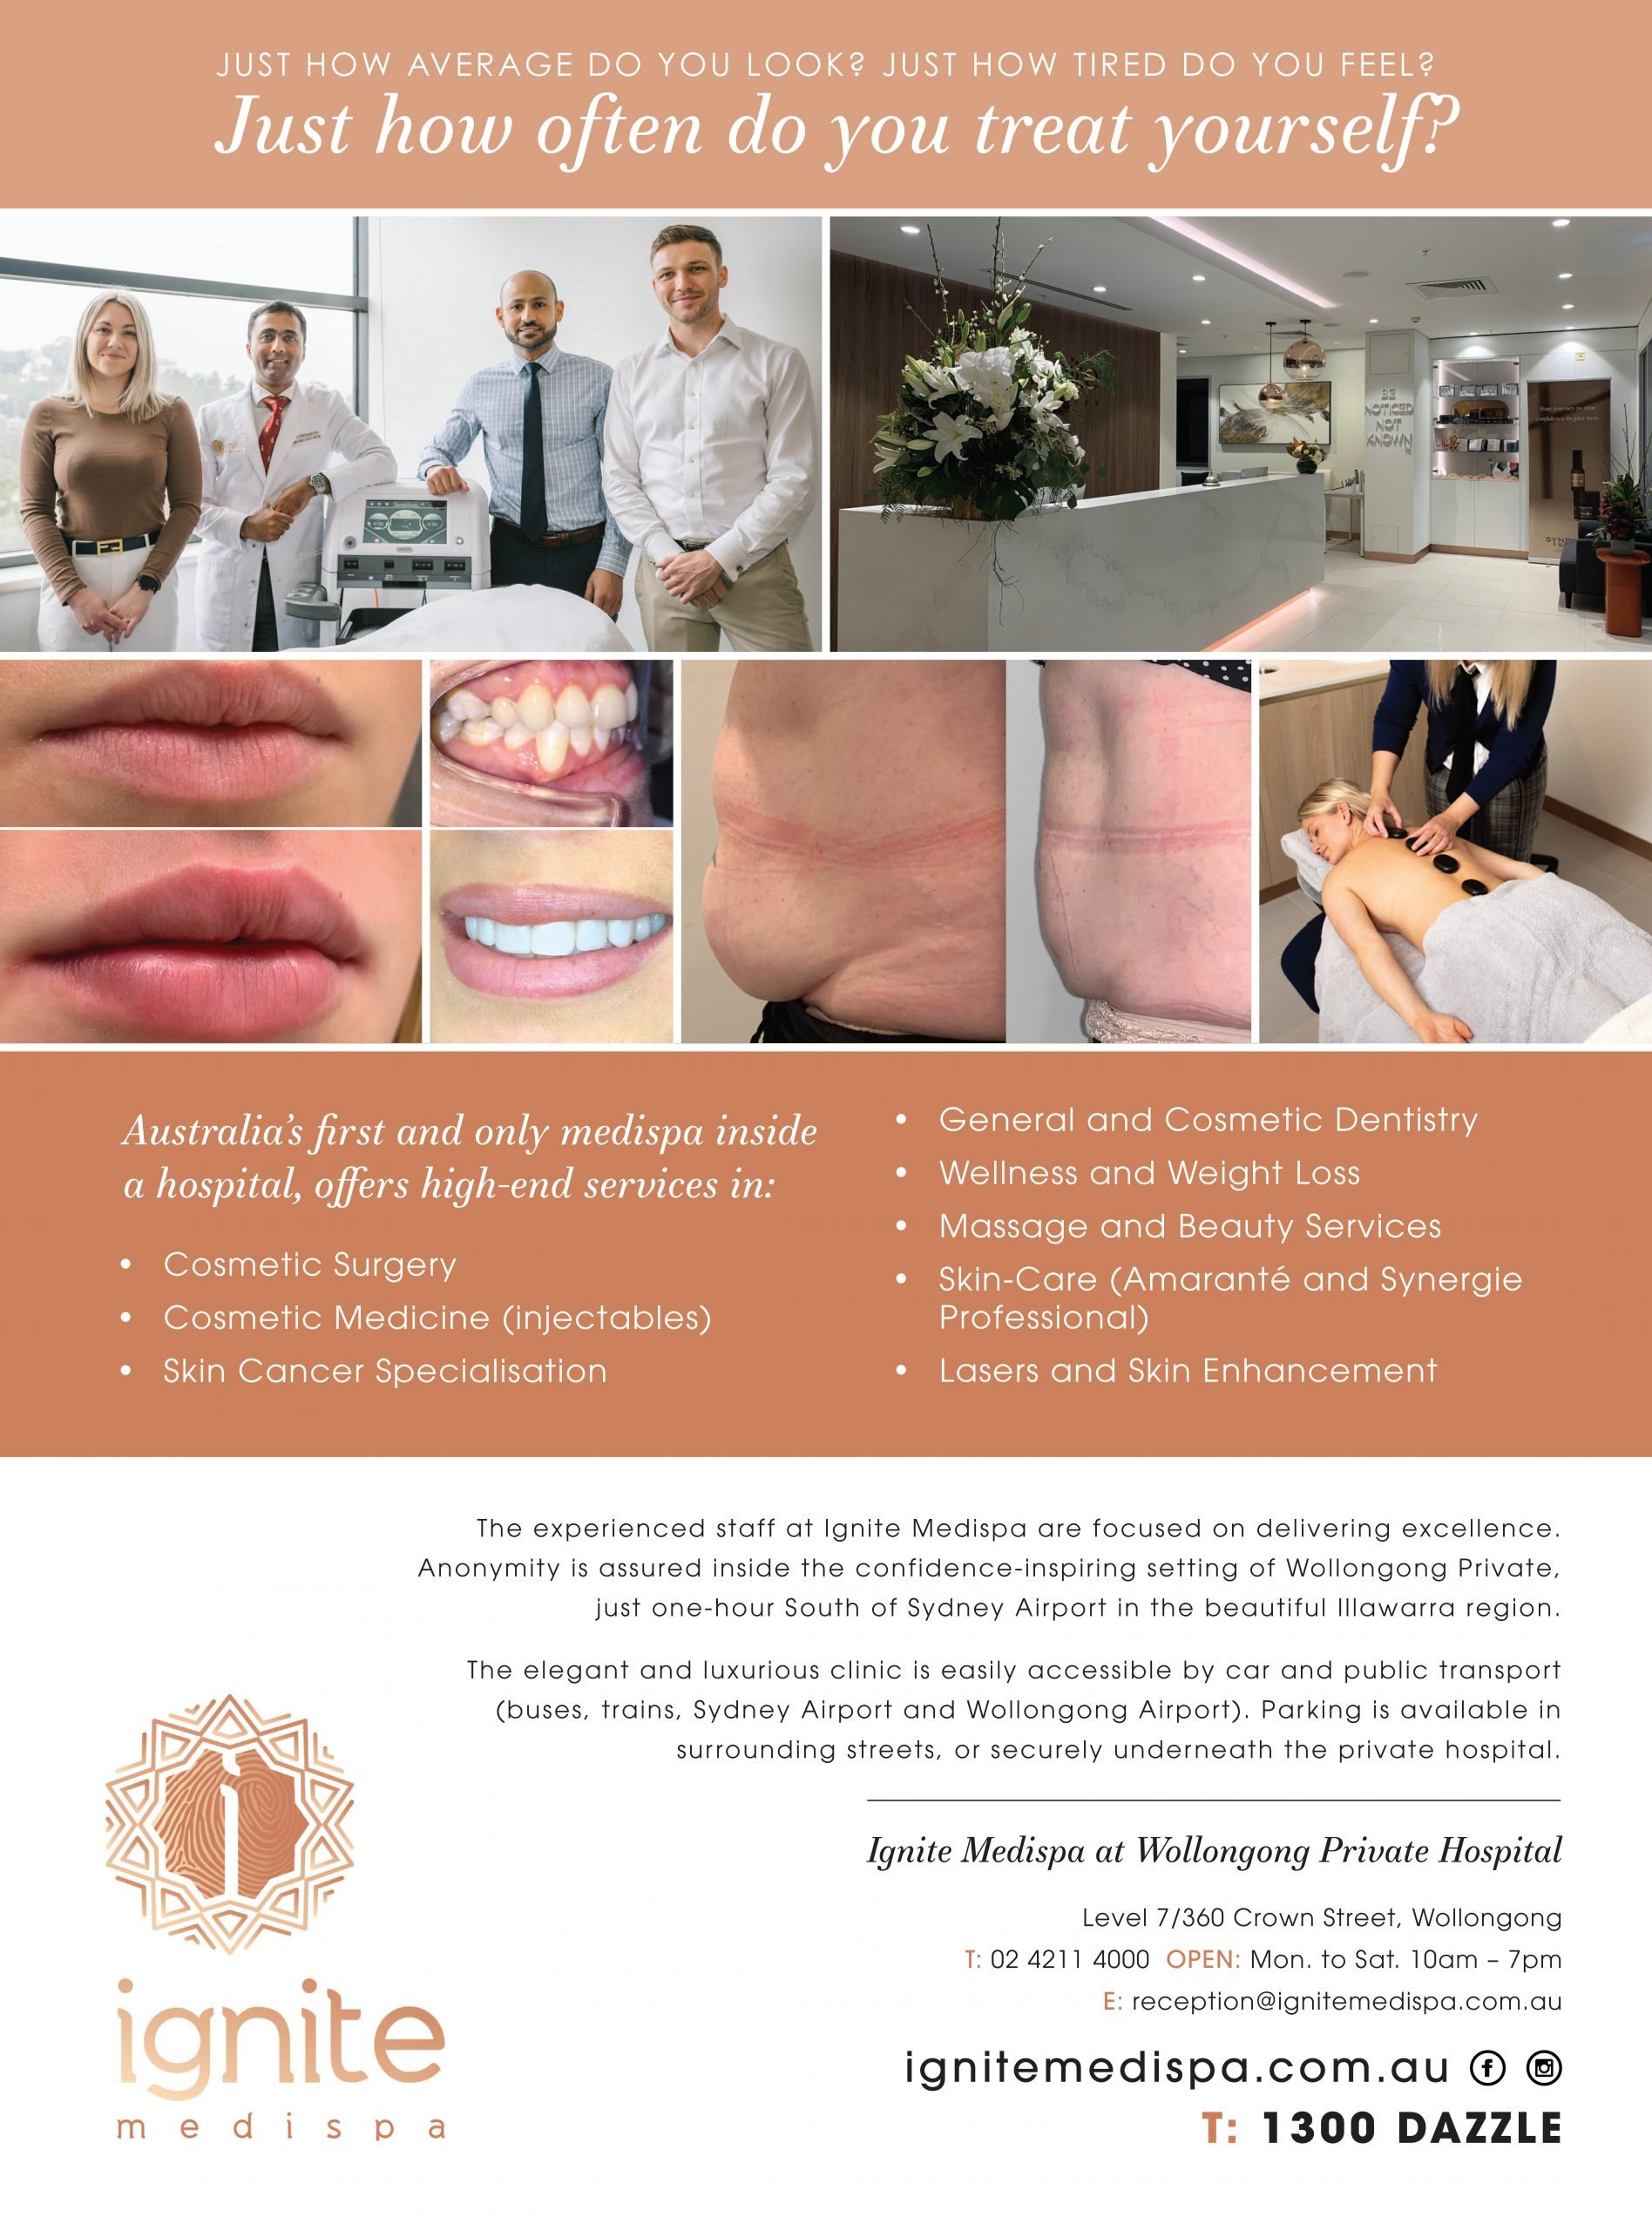 Media, Ignite MediSpa Wollongong | Cosmetic Surgery, Dentistry, Spa & Beauty, Wellness & More